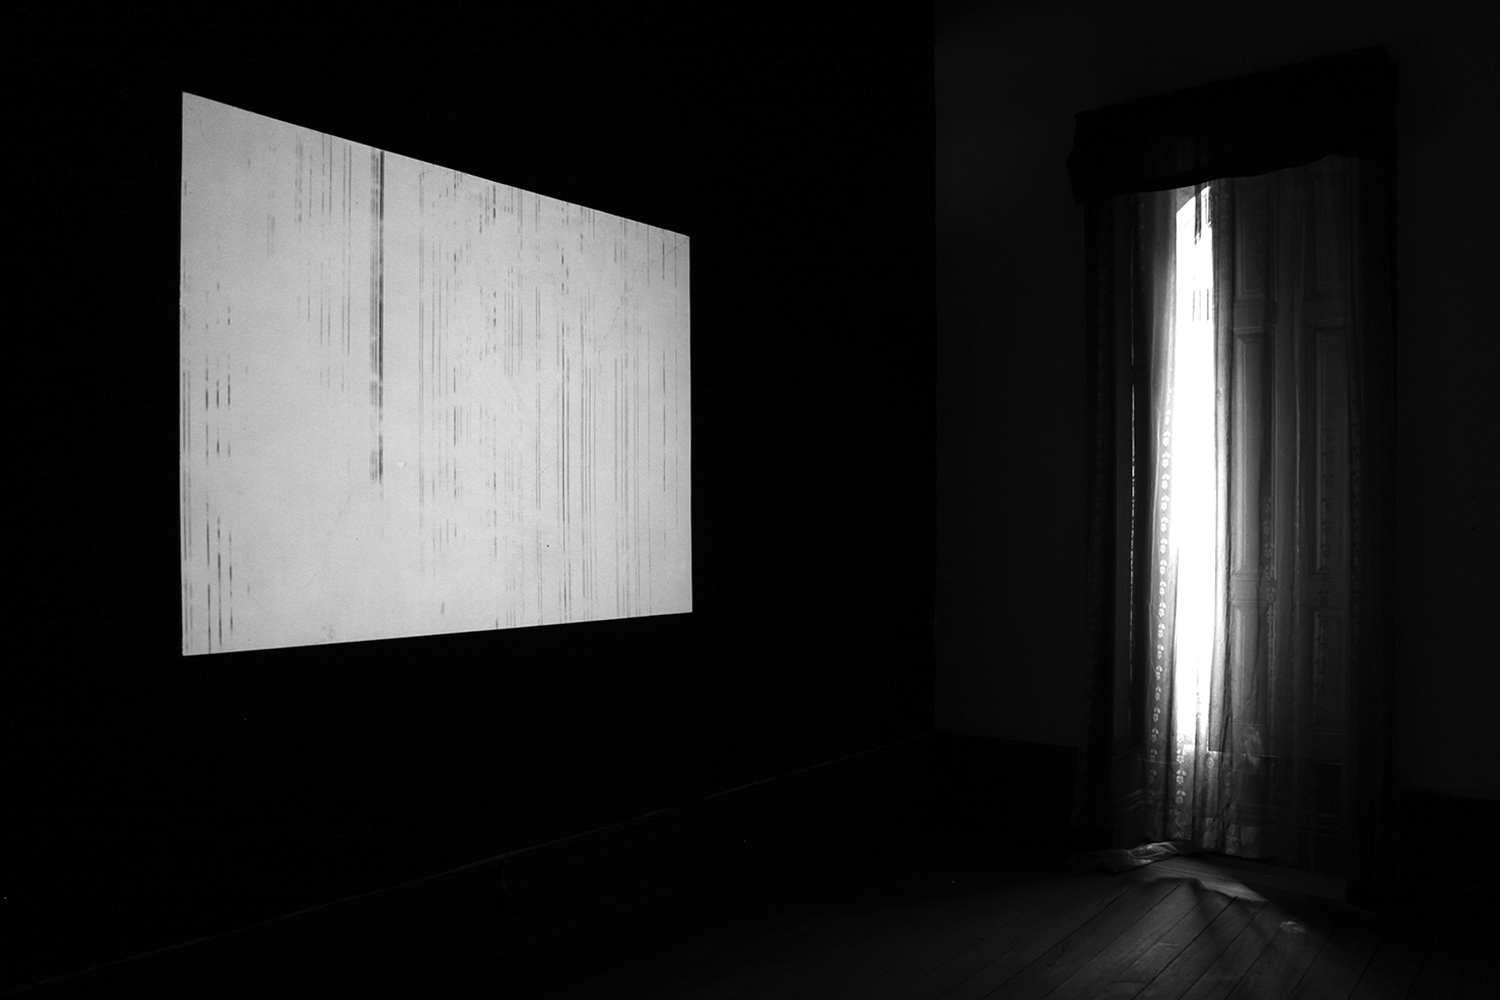 carina martins, asyncho - audiovisual projection in a black wall with window